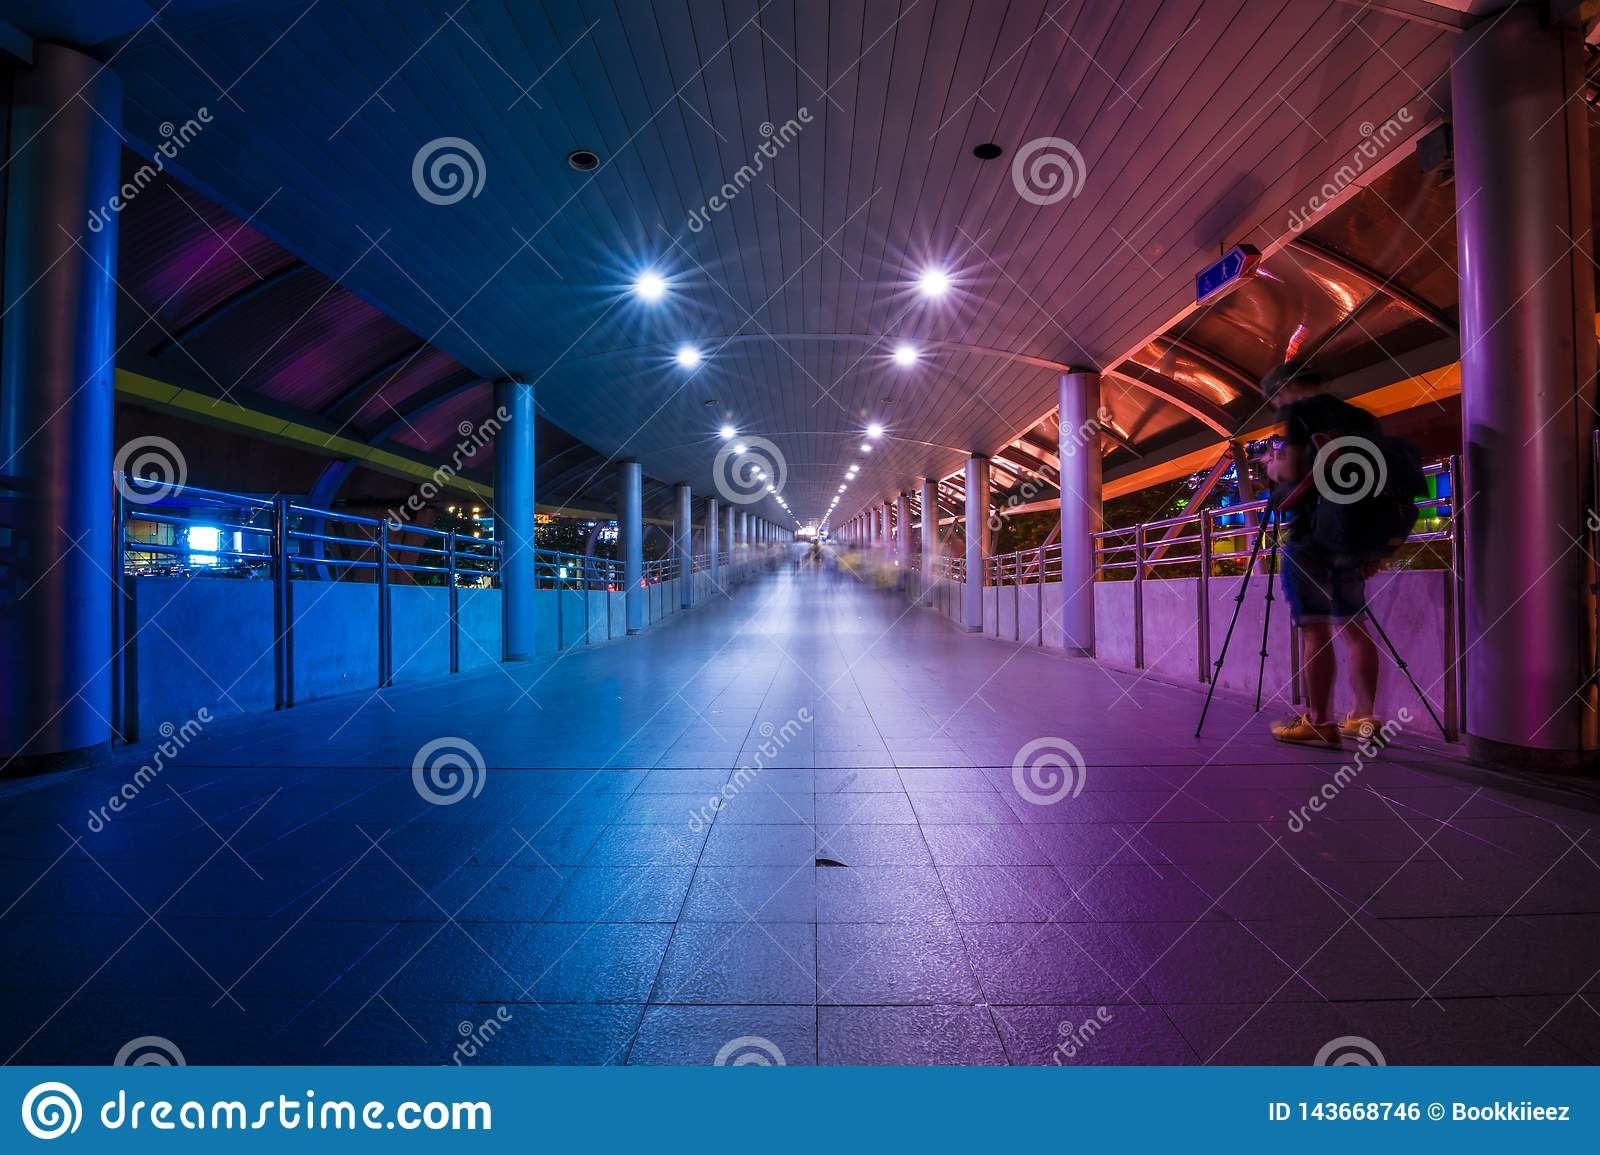 The pathway at metro system with purple and blue tone in Bangkok, Thailand.